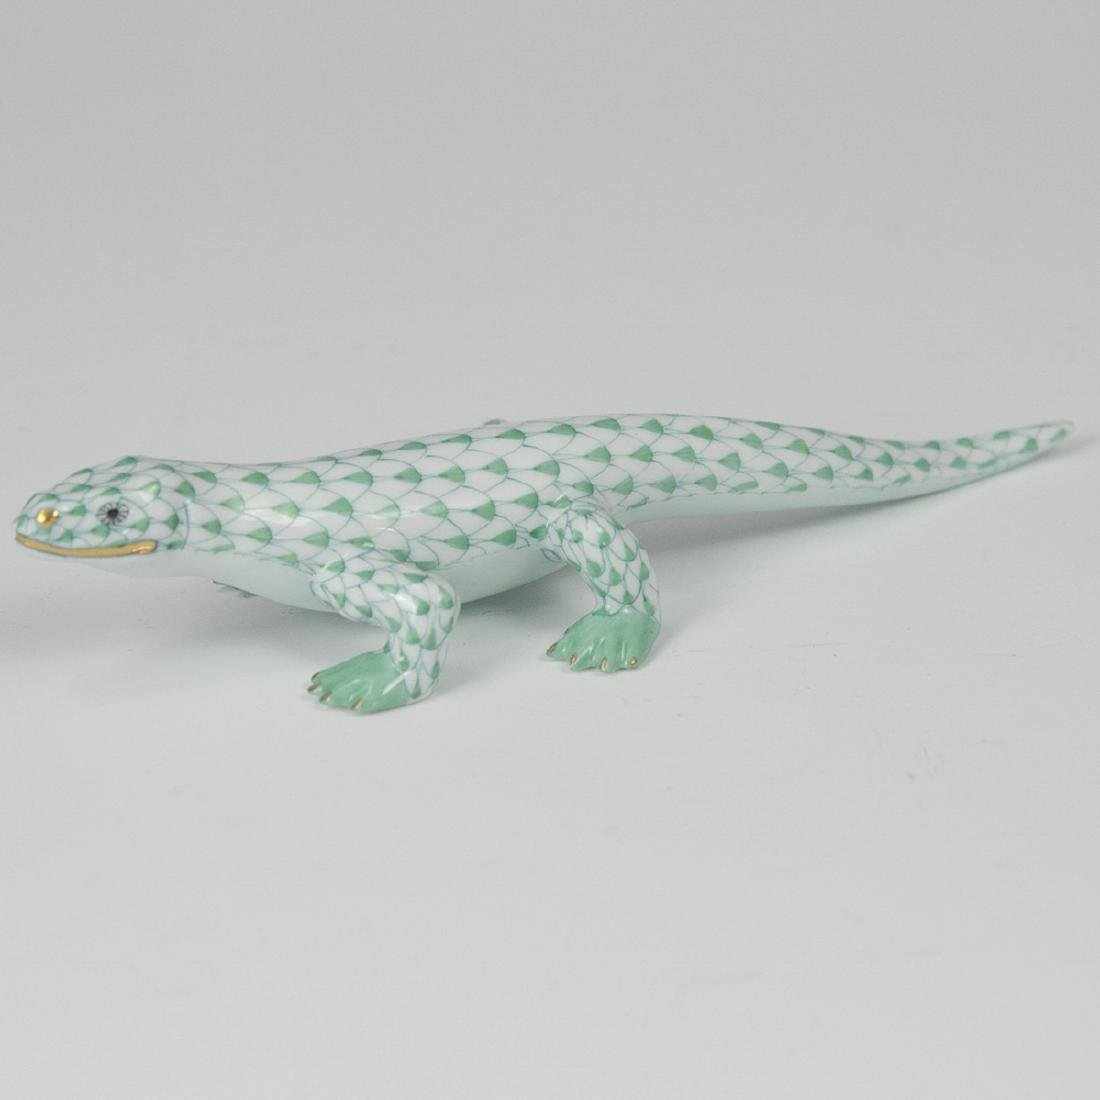 Herend Porcelain Fishnet Komodo Dragon